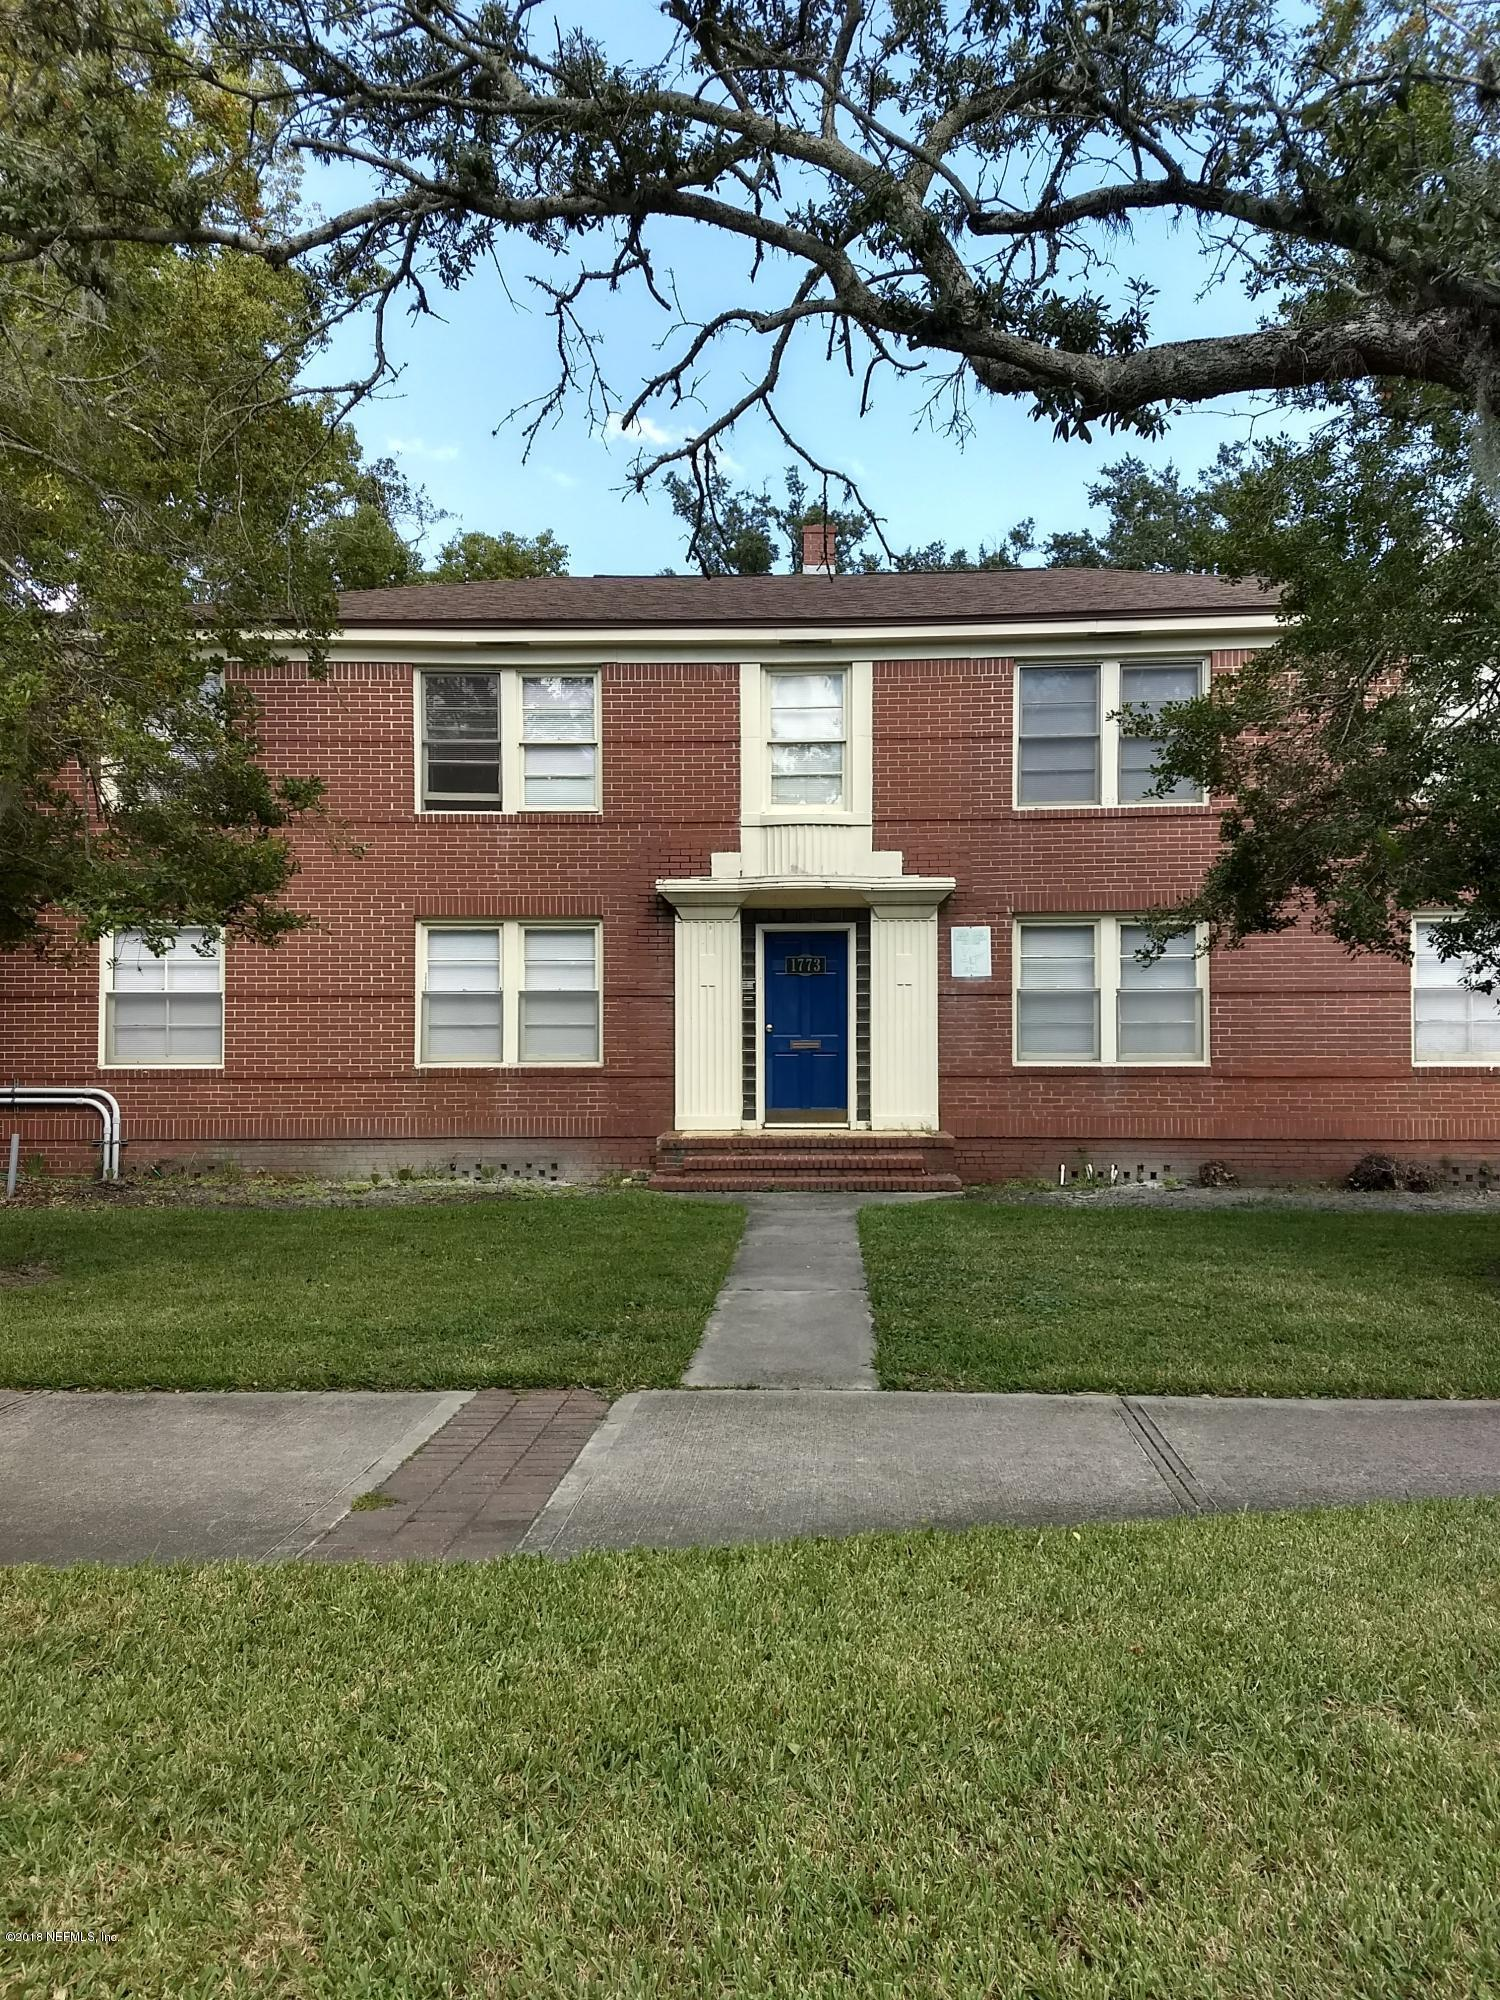 1773 SAN MARCO, JACKSONVILLE, FLORIDA 32207, 4 Bedrooms Bedrooms, ,4 BathroomsBathrooms,Commercial,For sale,SAN MARCO,964101